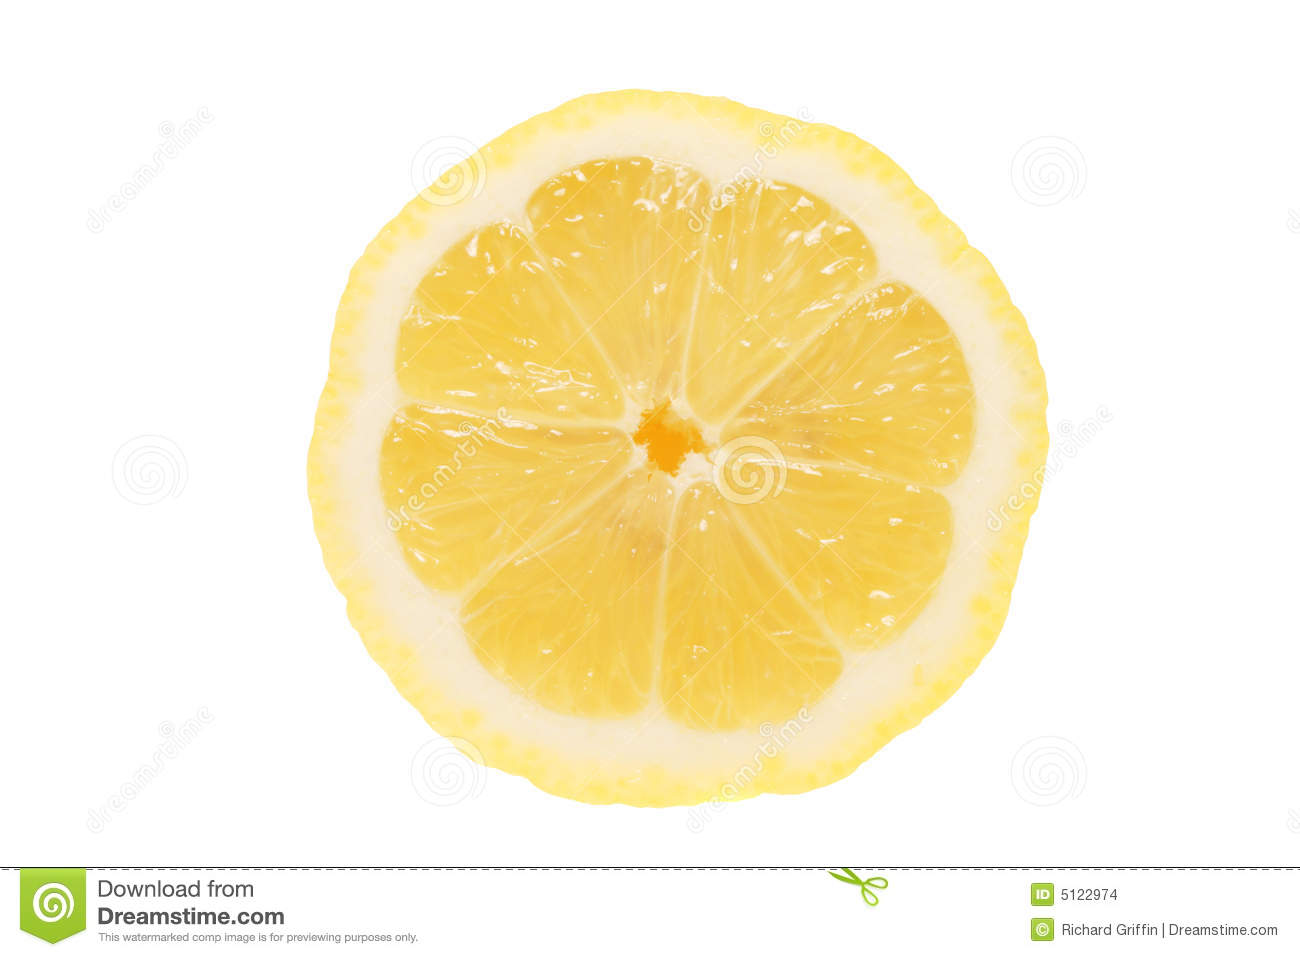 Half a lemon isolated on a white background.